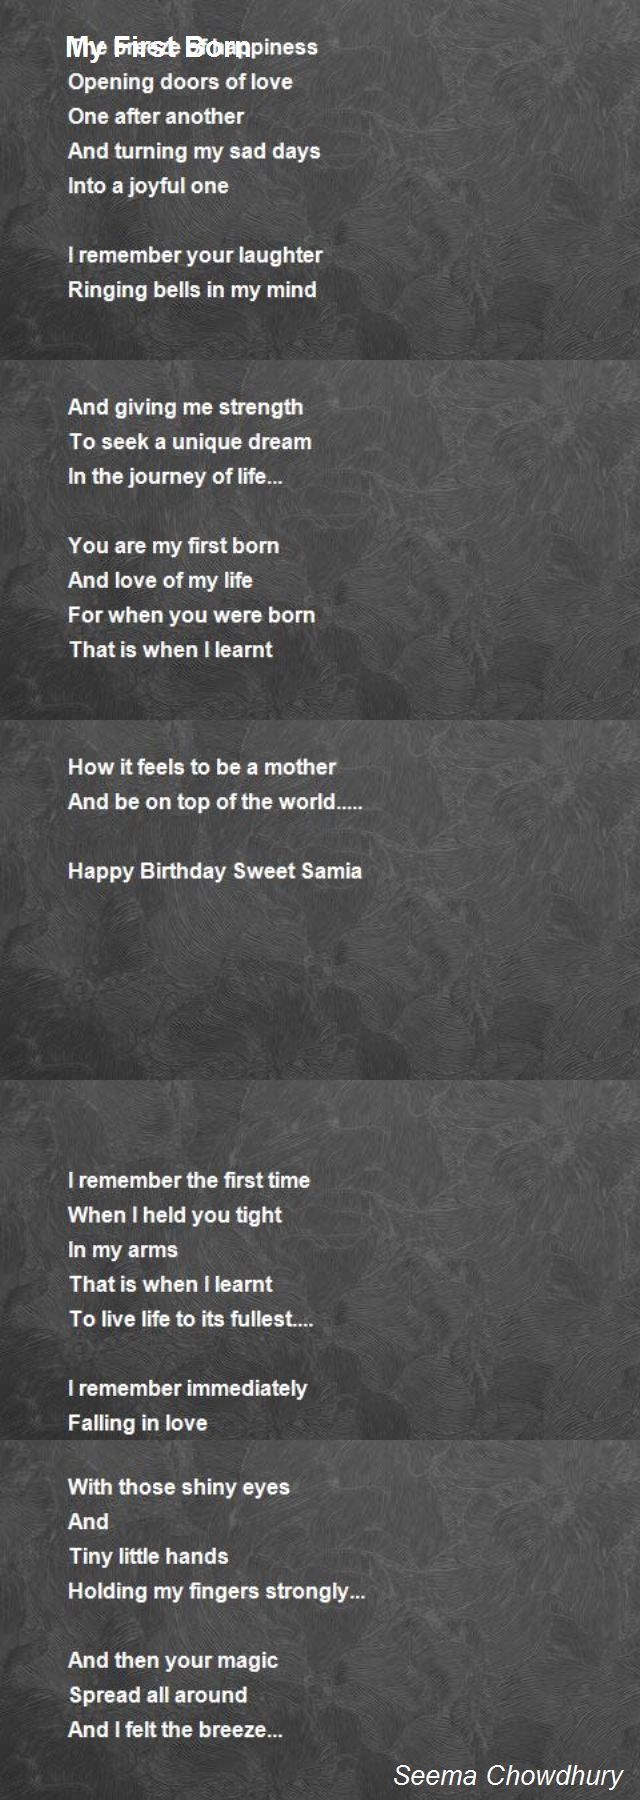 My first time poem